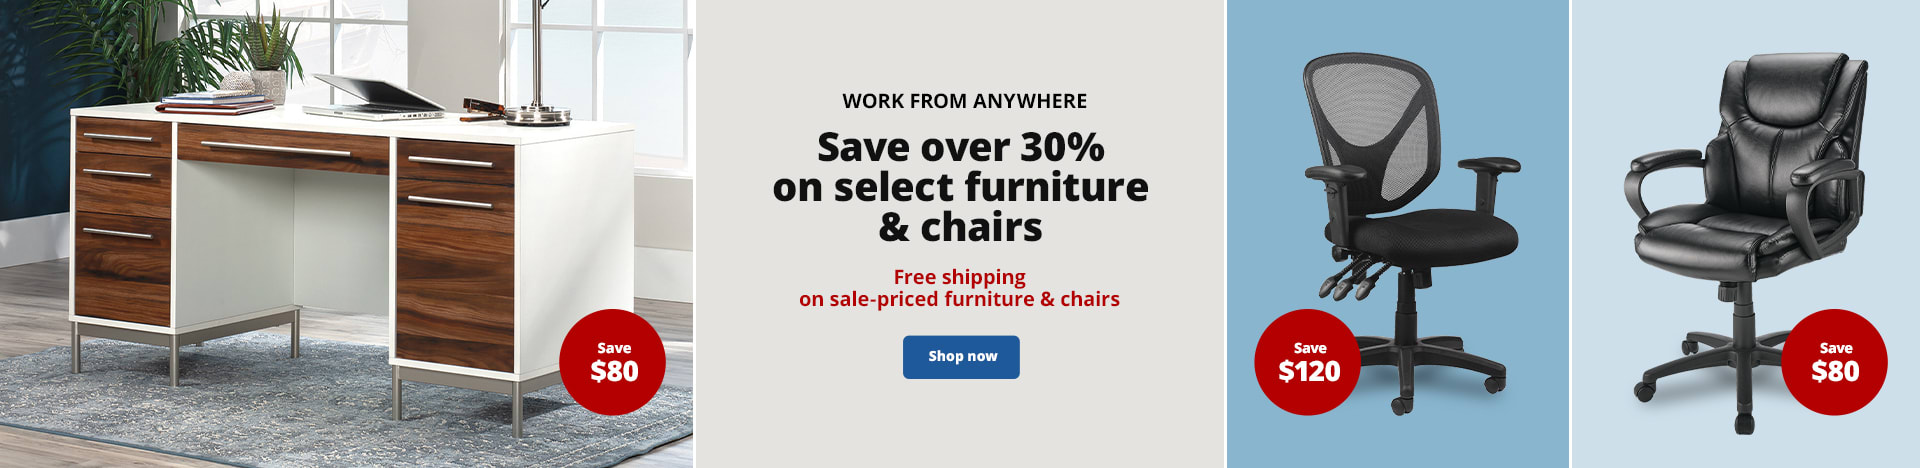 Work From Anywhere. Save over 30% on select furniture & chairs. Free shipping on sale-priced furniture & chairs